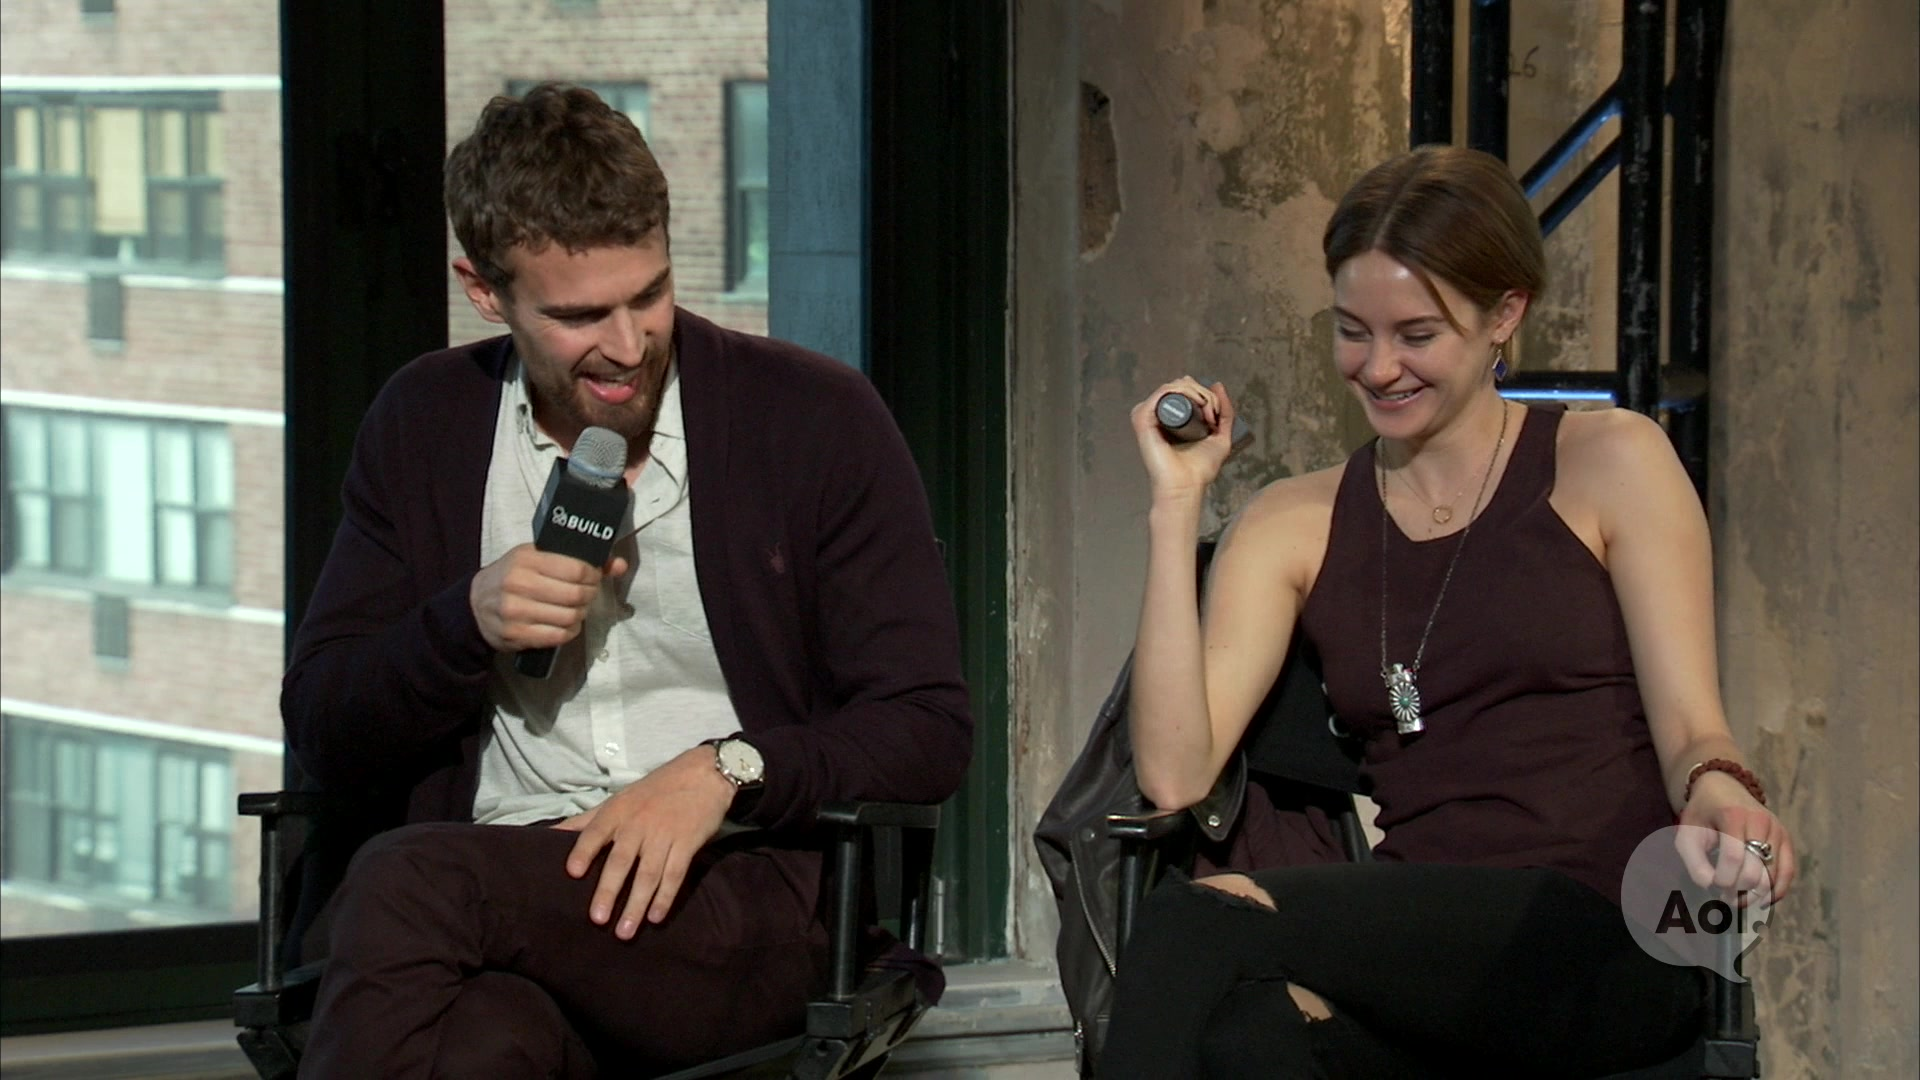 Shailene Woodley and Theo James on Social Media